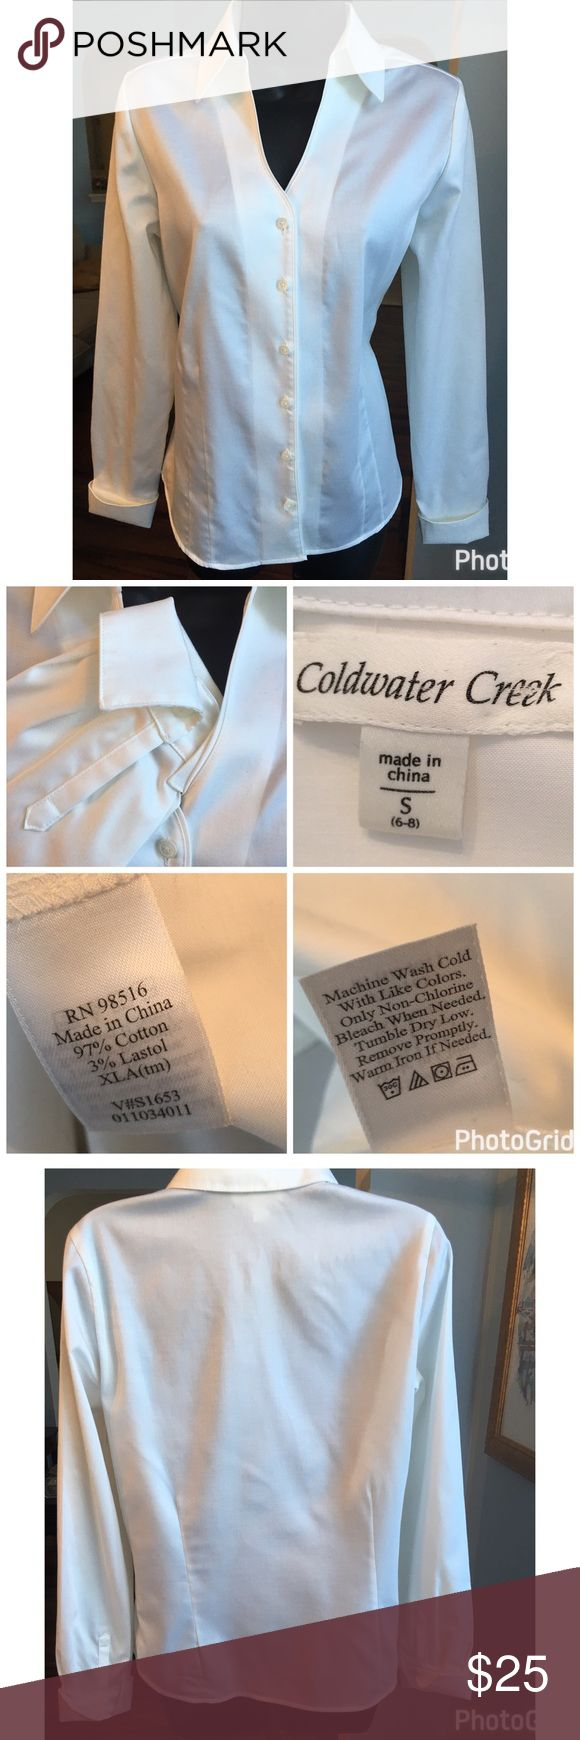 "Coldwater Creek Button Down Coldwater Creek beautiful white button down. Cuffed sleeves and v neck. The perfect white button down. Measures 24"" in length and 19"" across the chest. Excellent condition Coldwater Creek Tops Button Down Shirts"